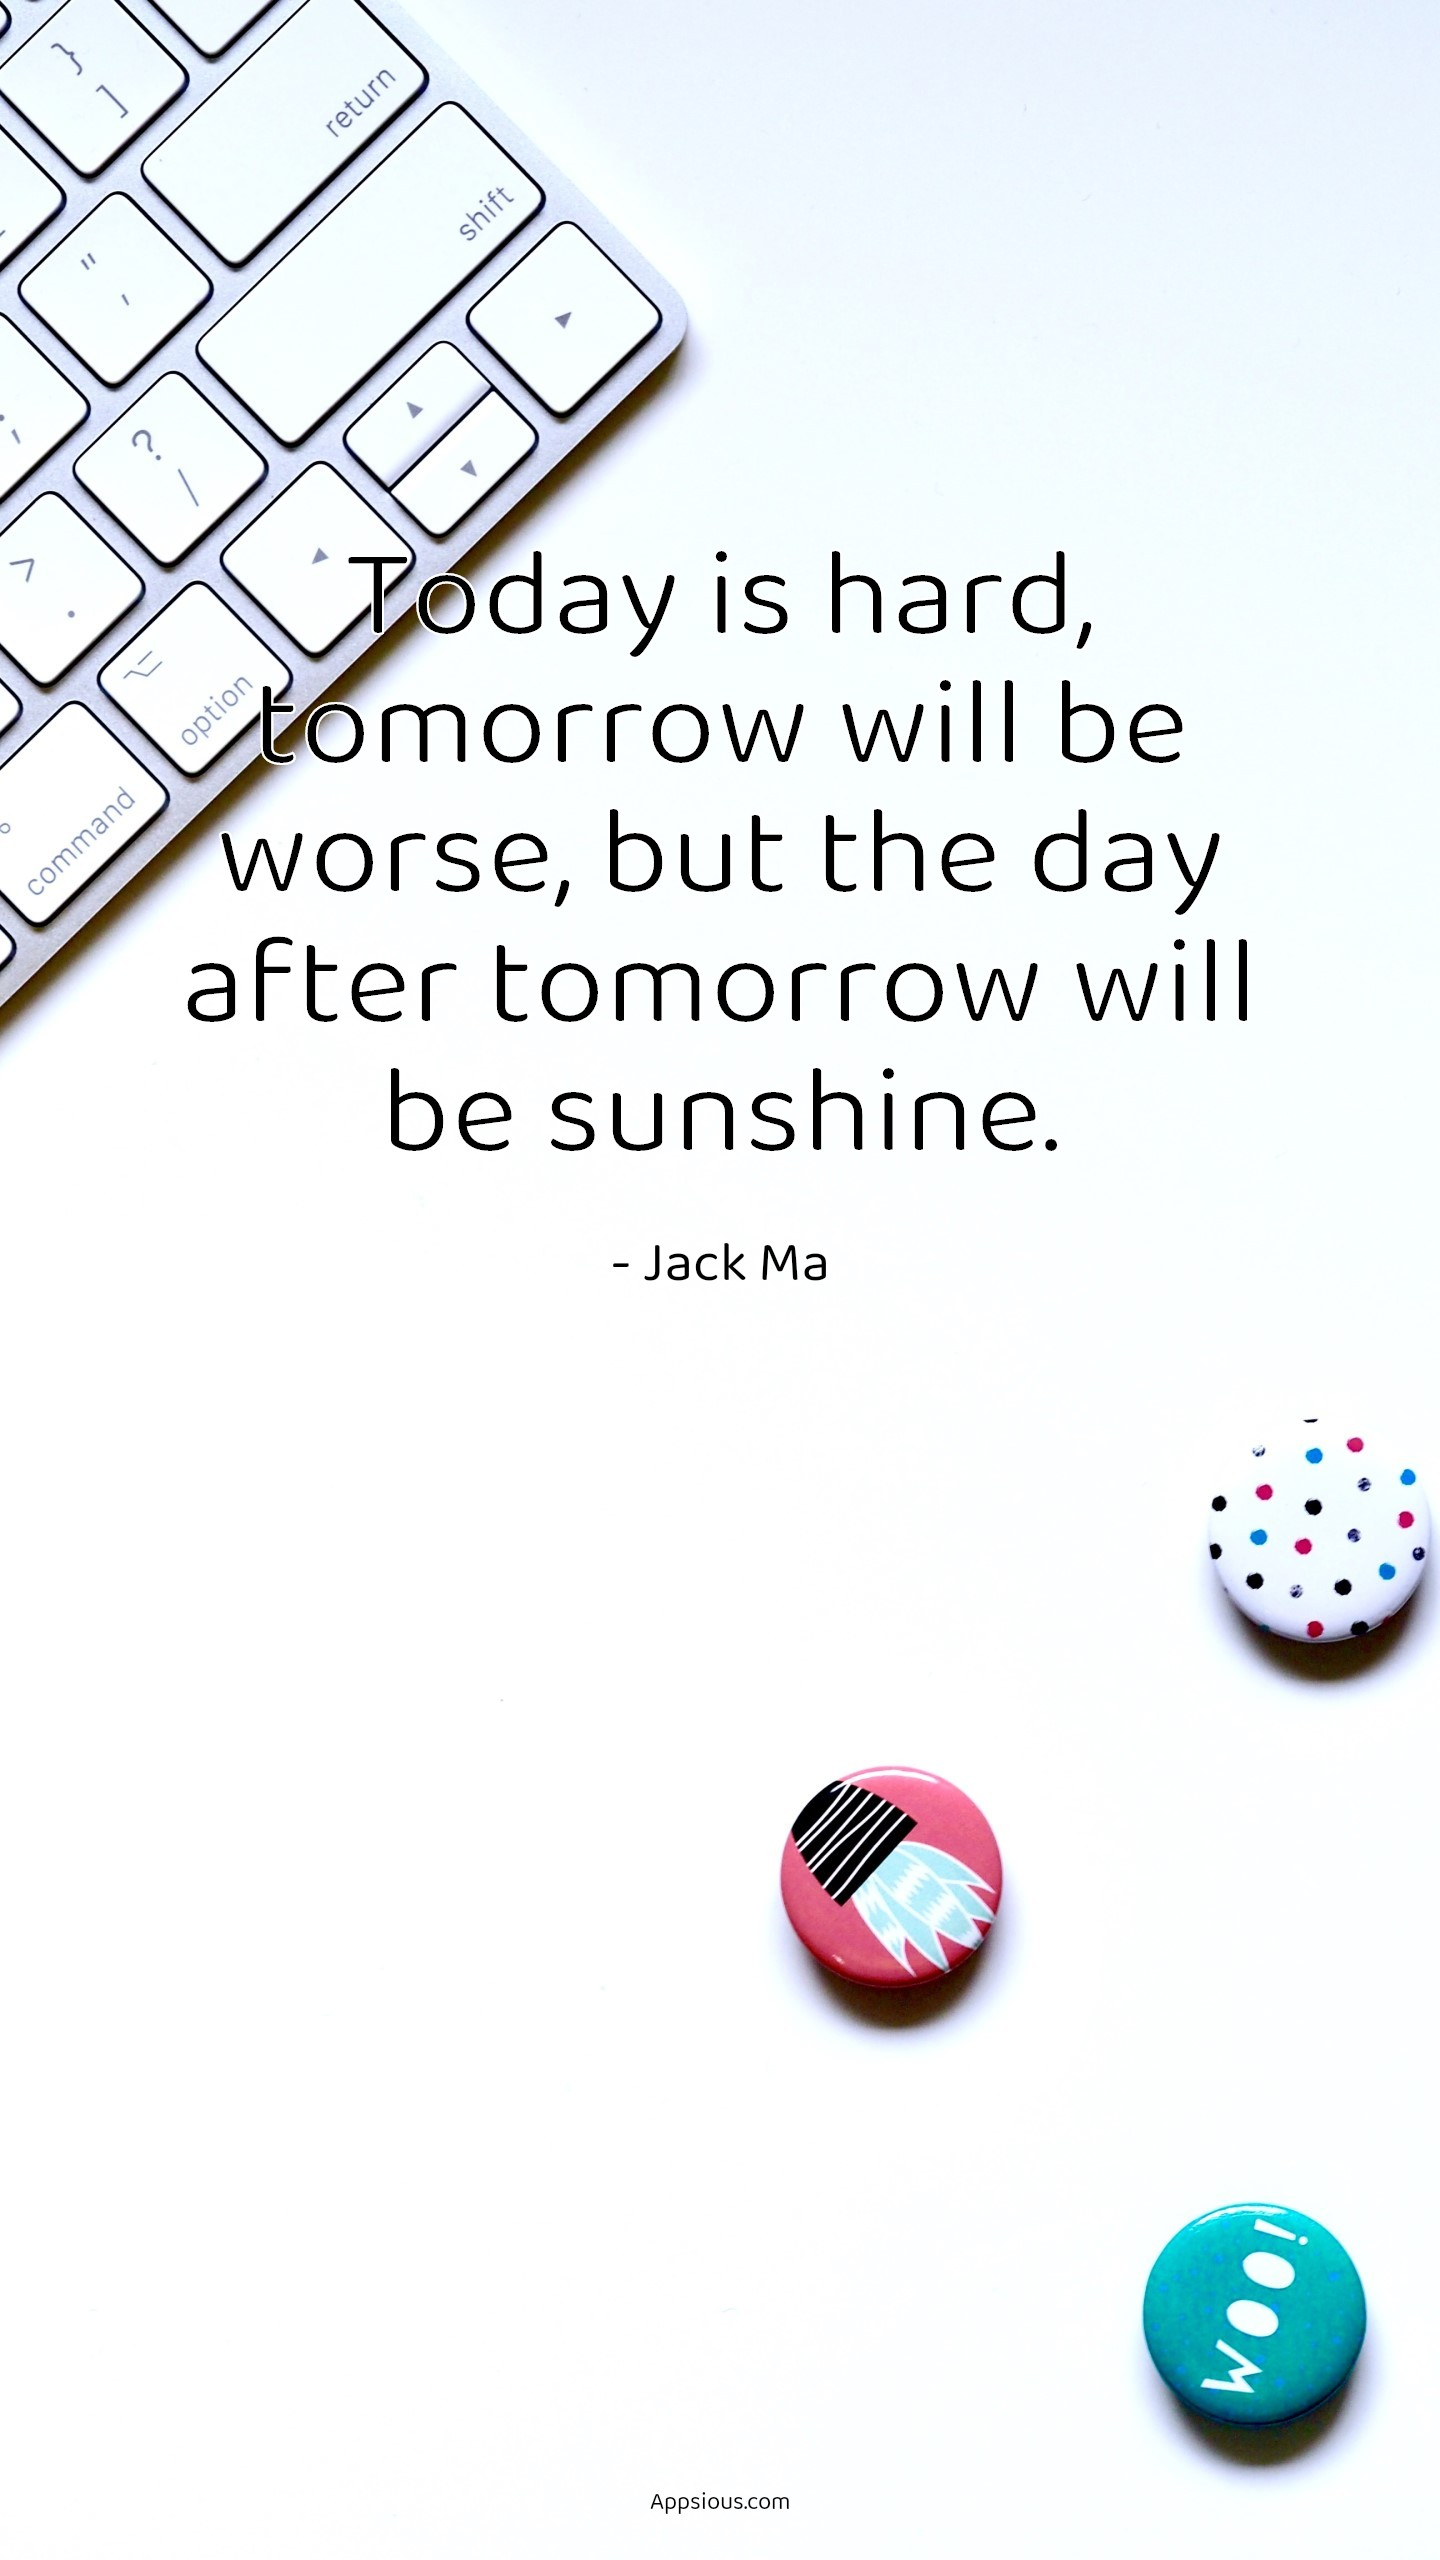 Today is hard, tomorrow will be worse, but the day after tomorrow will be sunshine.